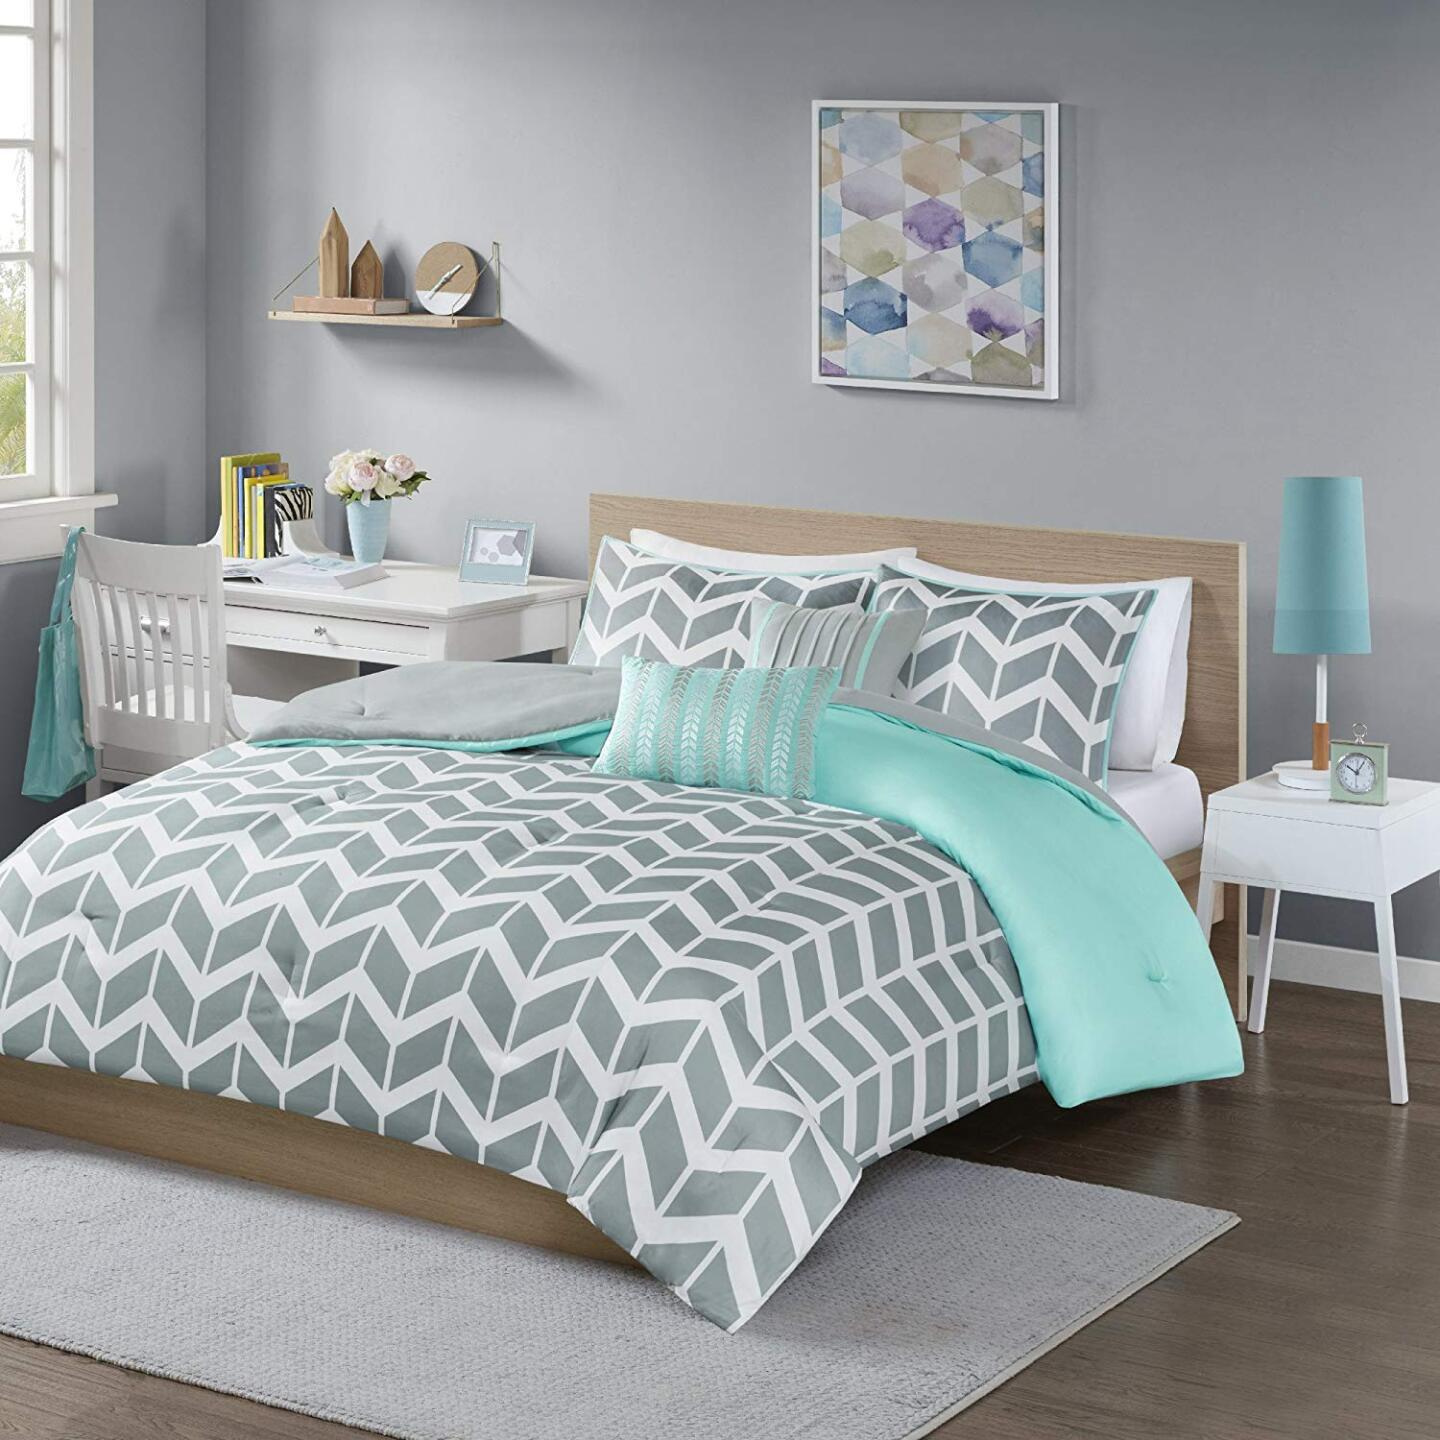 Intelligent Design Nadia Comforter Set.jpg